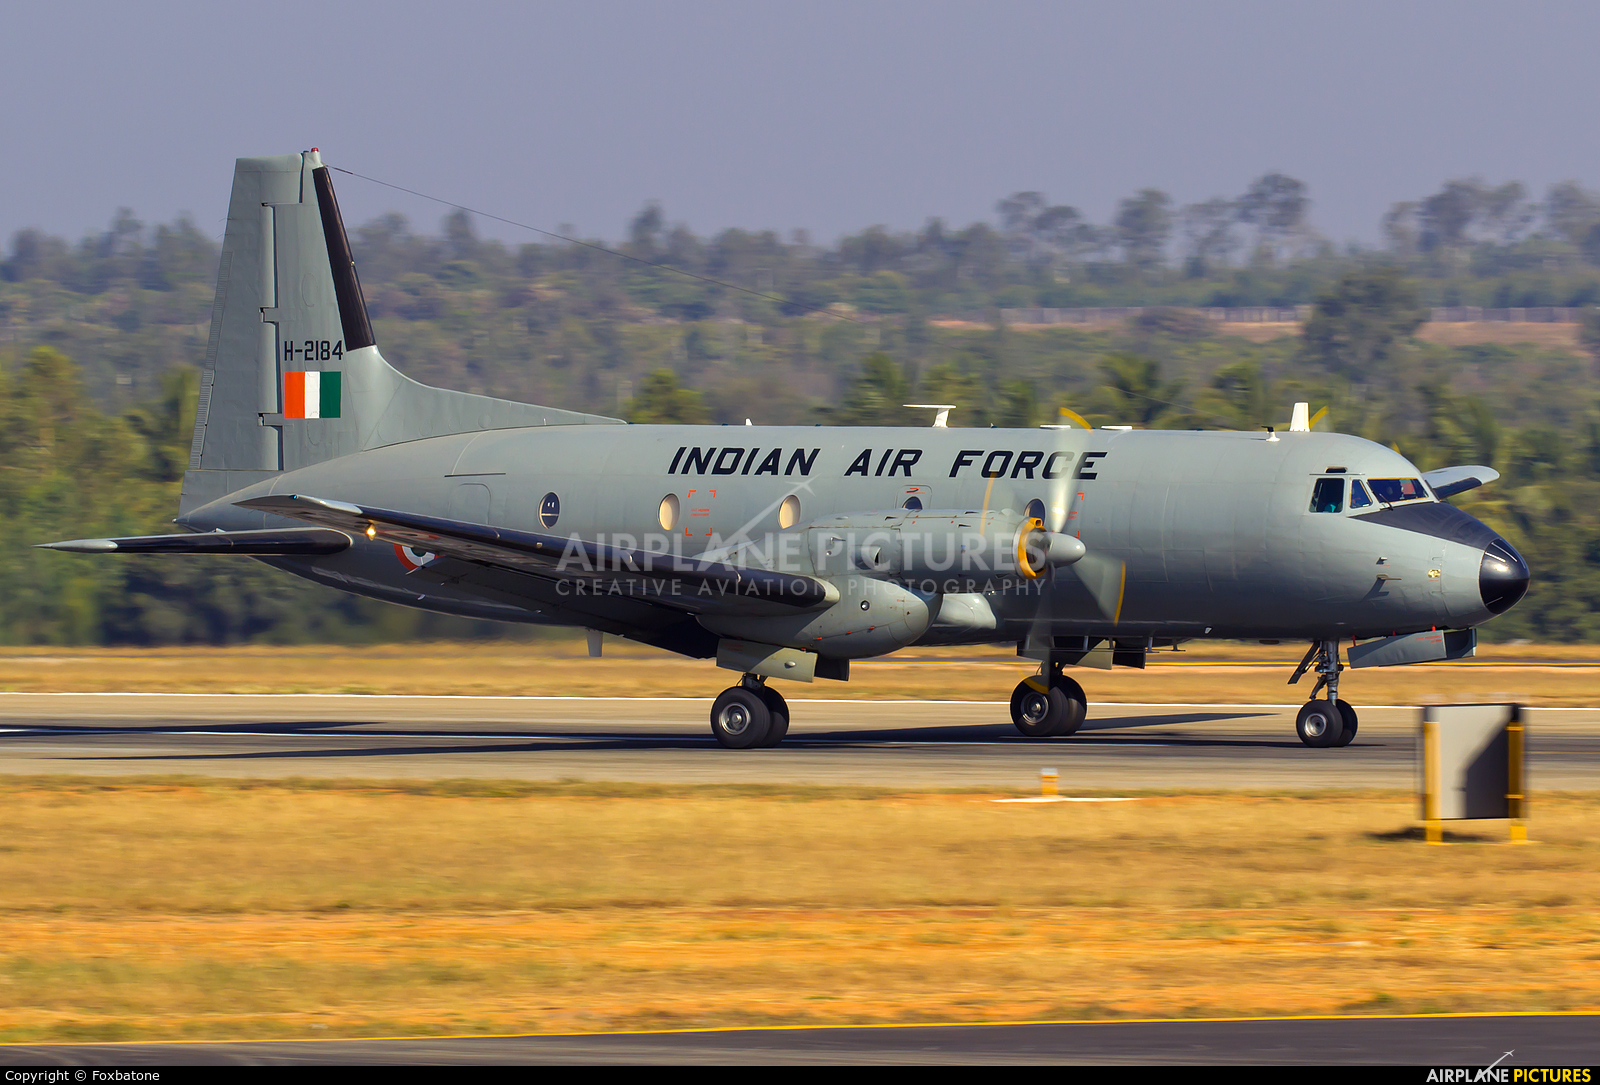 India - Air Force H-2184 aircraft at Yelahanka AFB